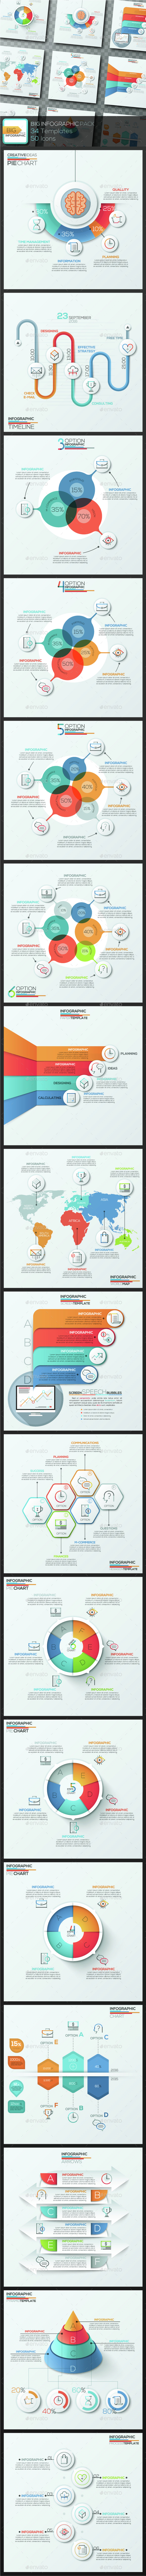 Big Infographic Pack - Infographics